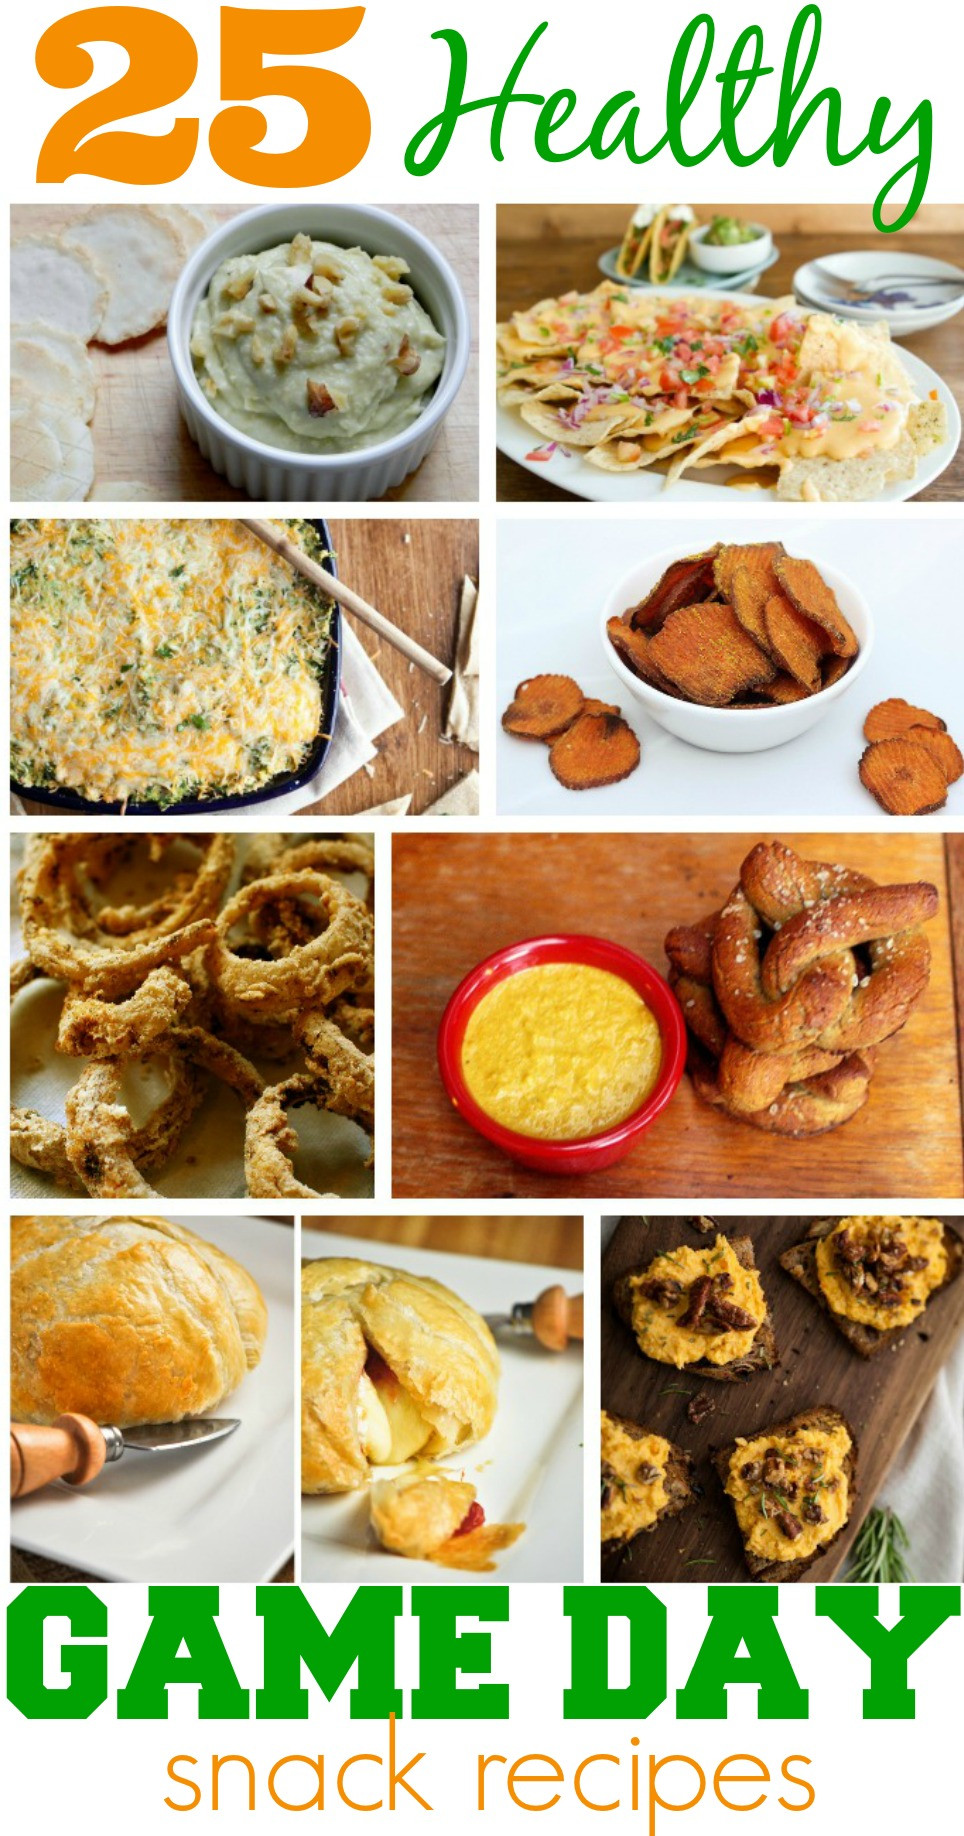 Healthy Game Day Snacks  25 Healthy Game Day Snack Recipes Perfect for the Super